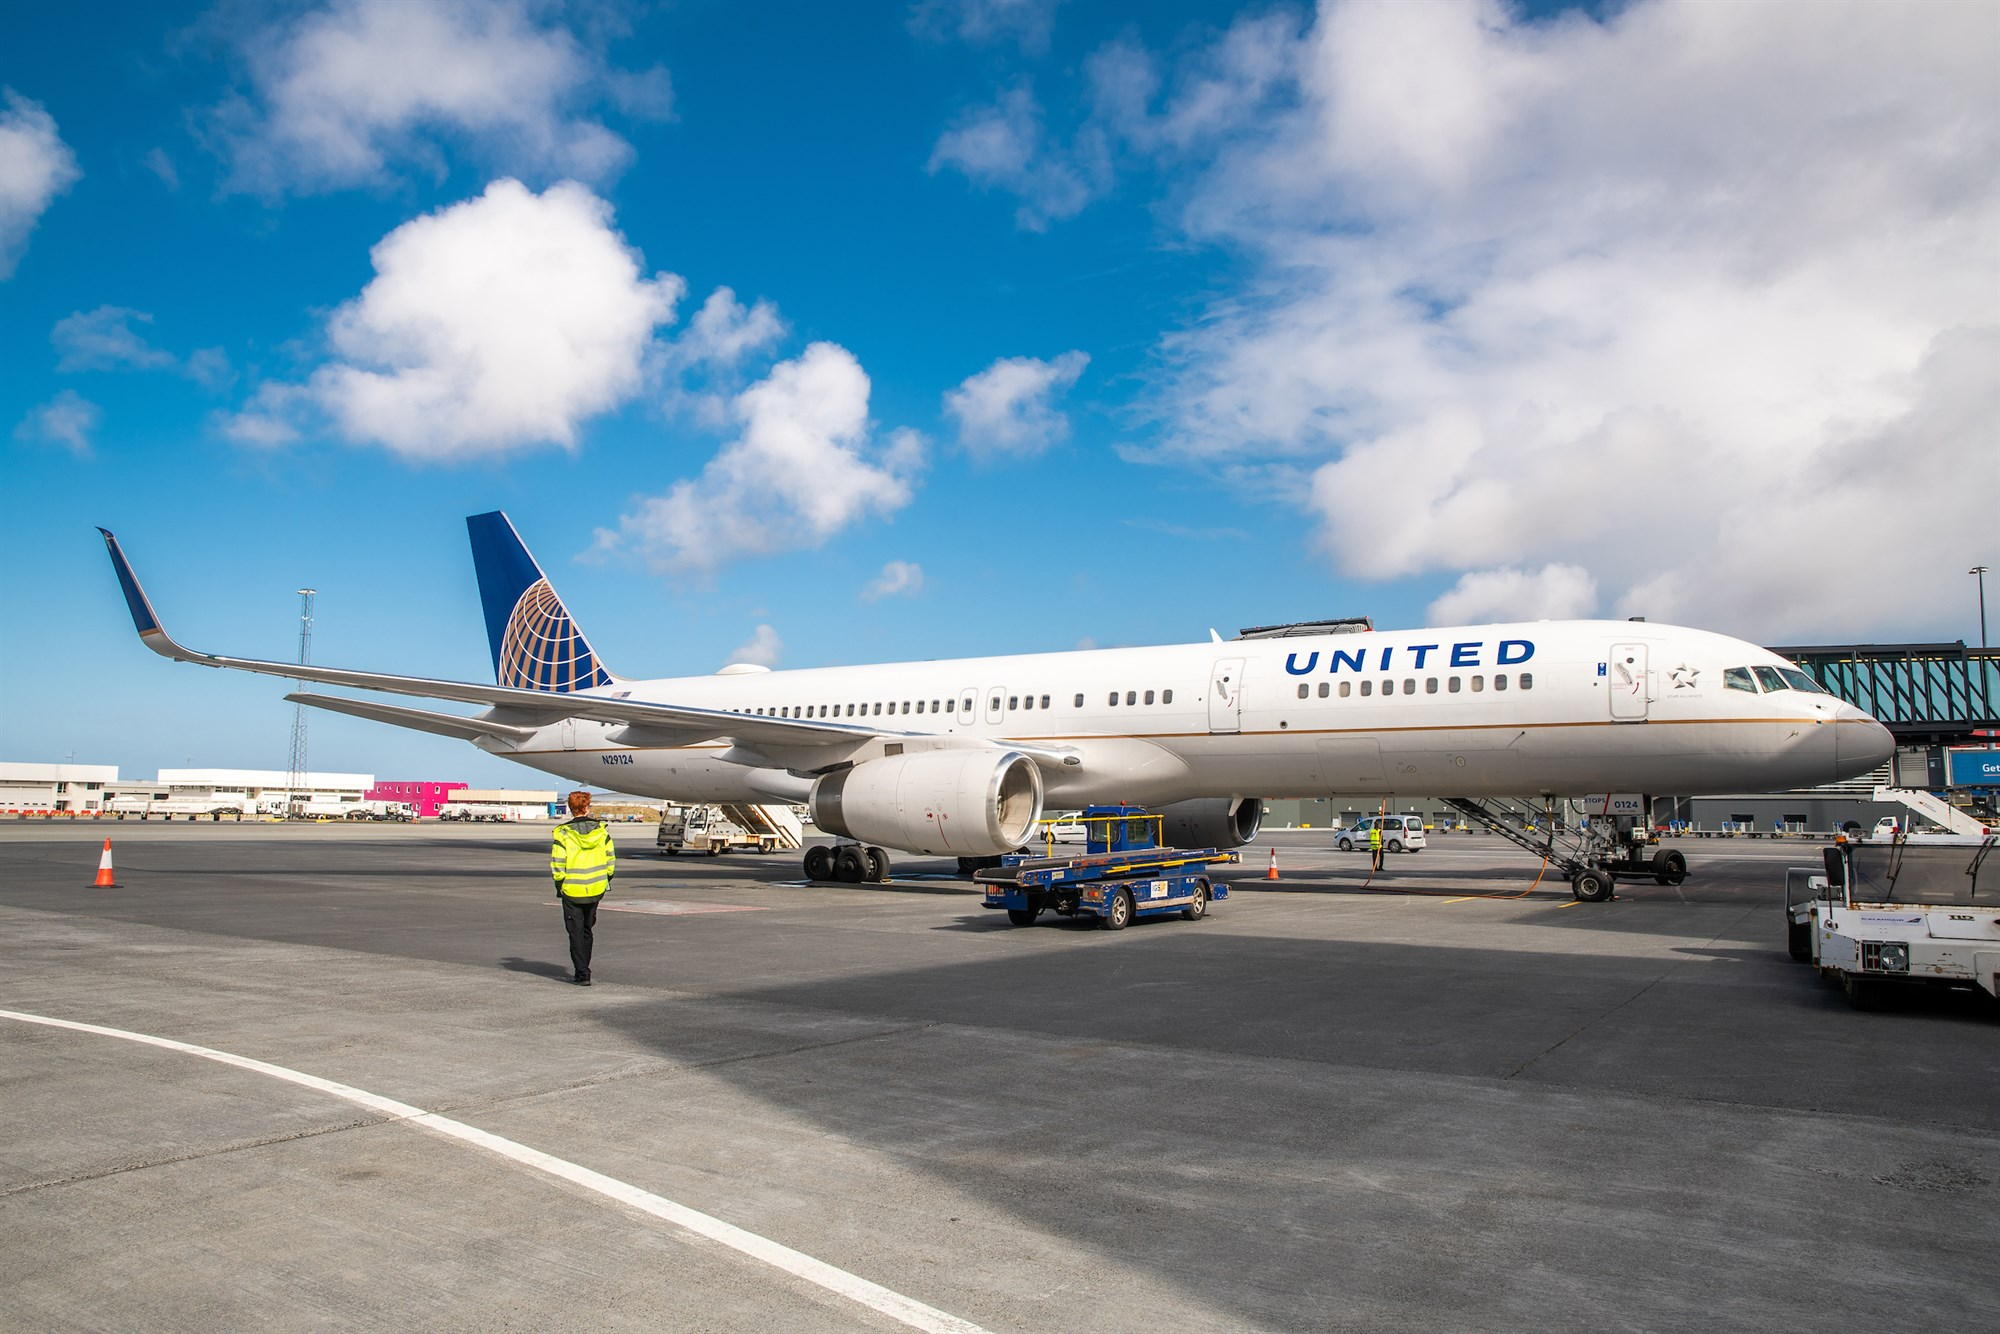 United Airlines Flies to Iceland again this summer from New York and Chicago